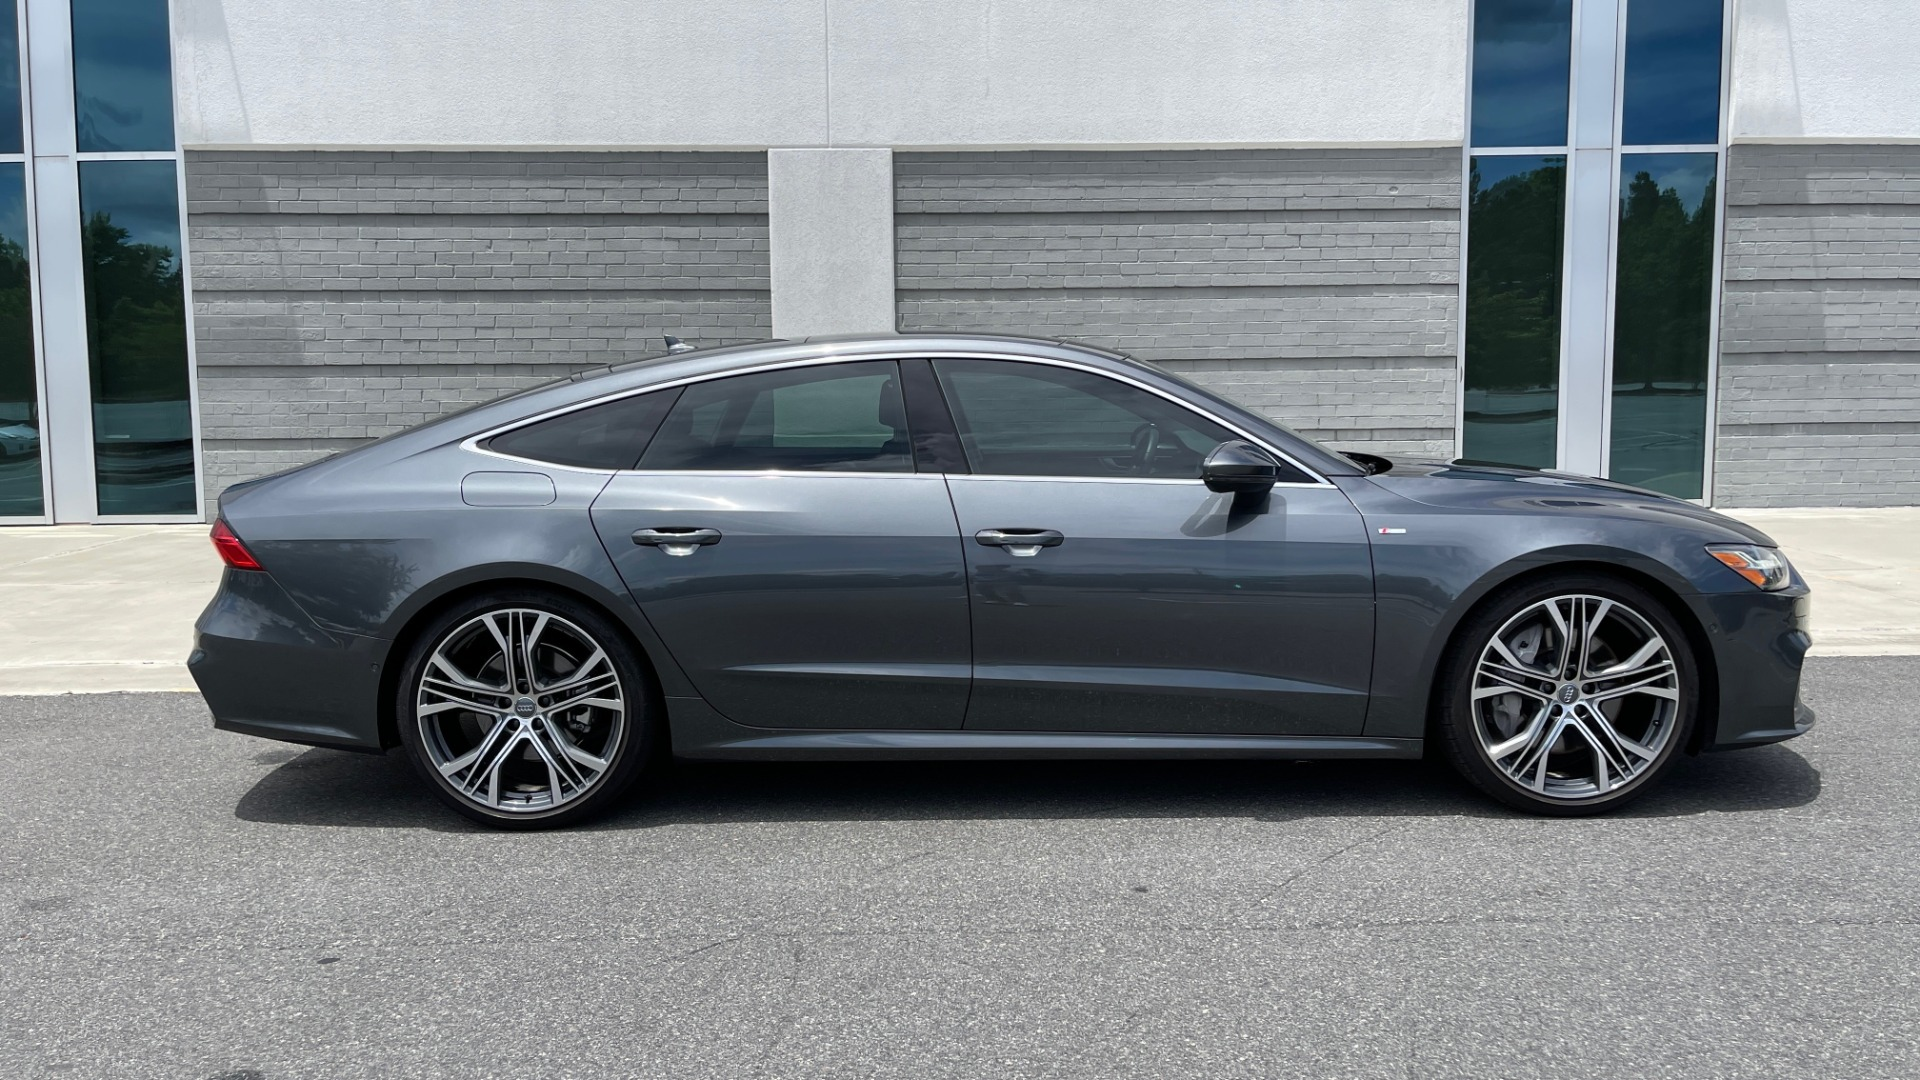 Used 2019 Audi A7 PRESTIGE 55 TFSI 3.0T / NAV / B&O SND / SUNROOF / S-LINE / 21IN WHLS / REAR for sale $66,995 at Formula Imports in Charlotte NC 28227 7